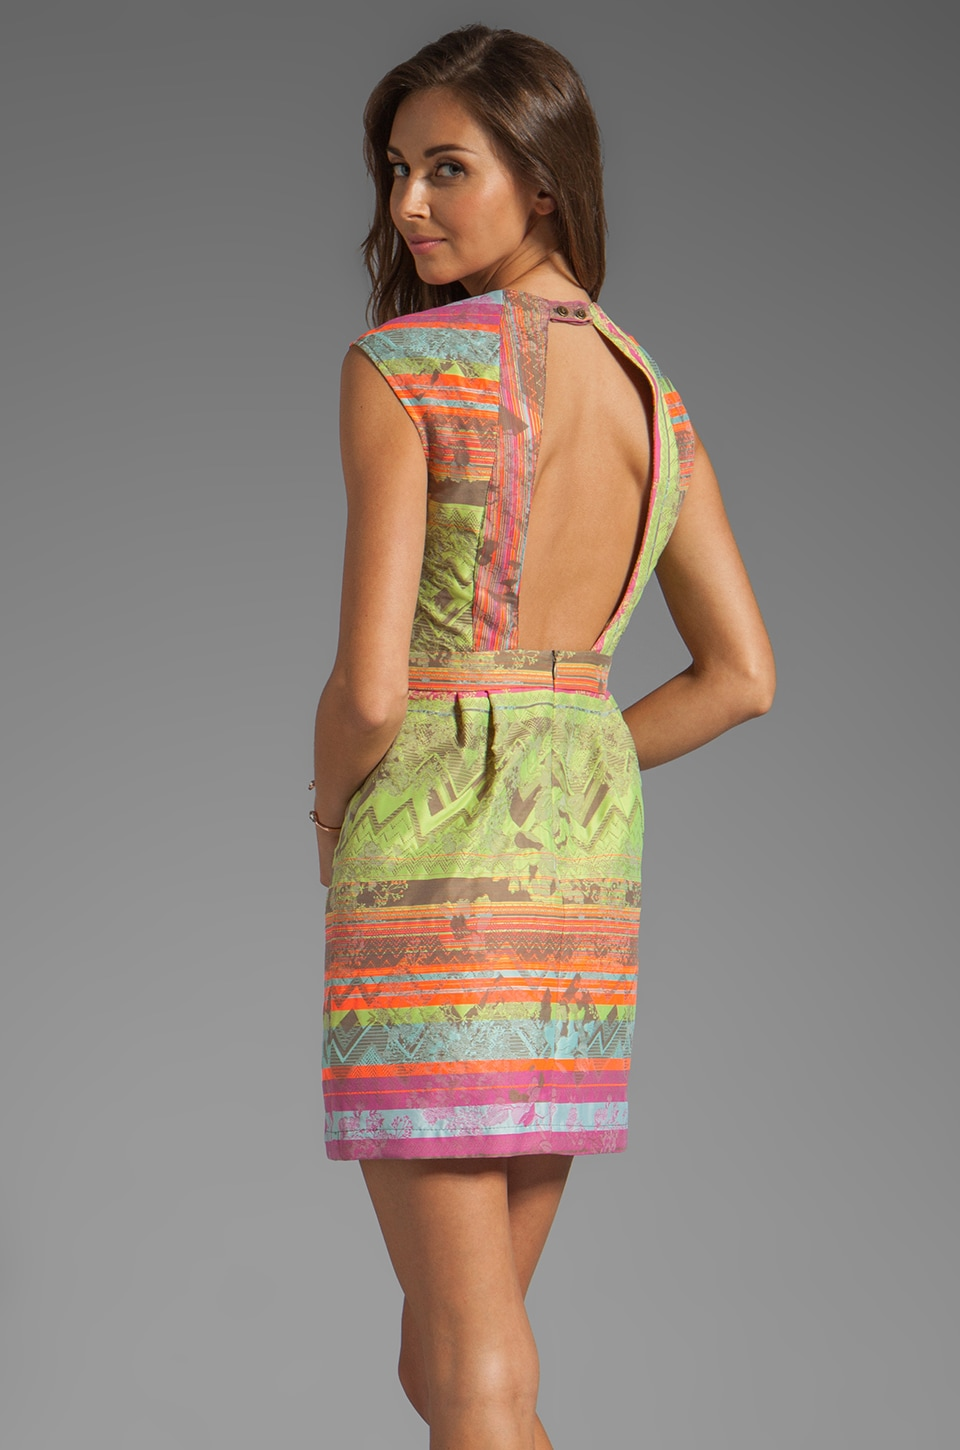 Twelfth Street By Cynthia Vincent Conch Backless Dress in Neon Jacquard